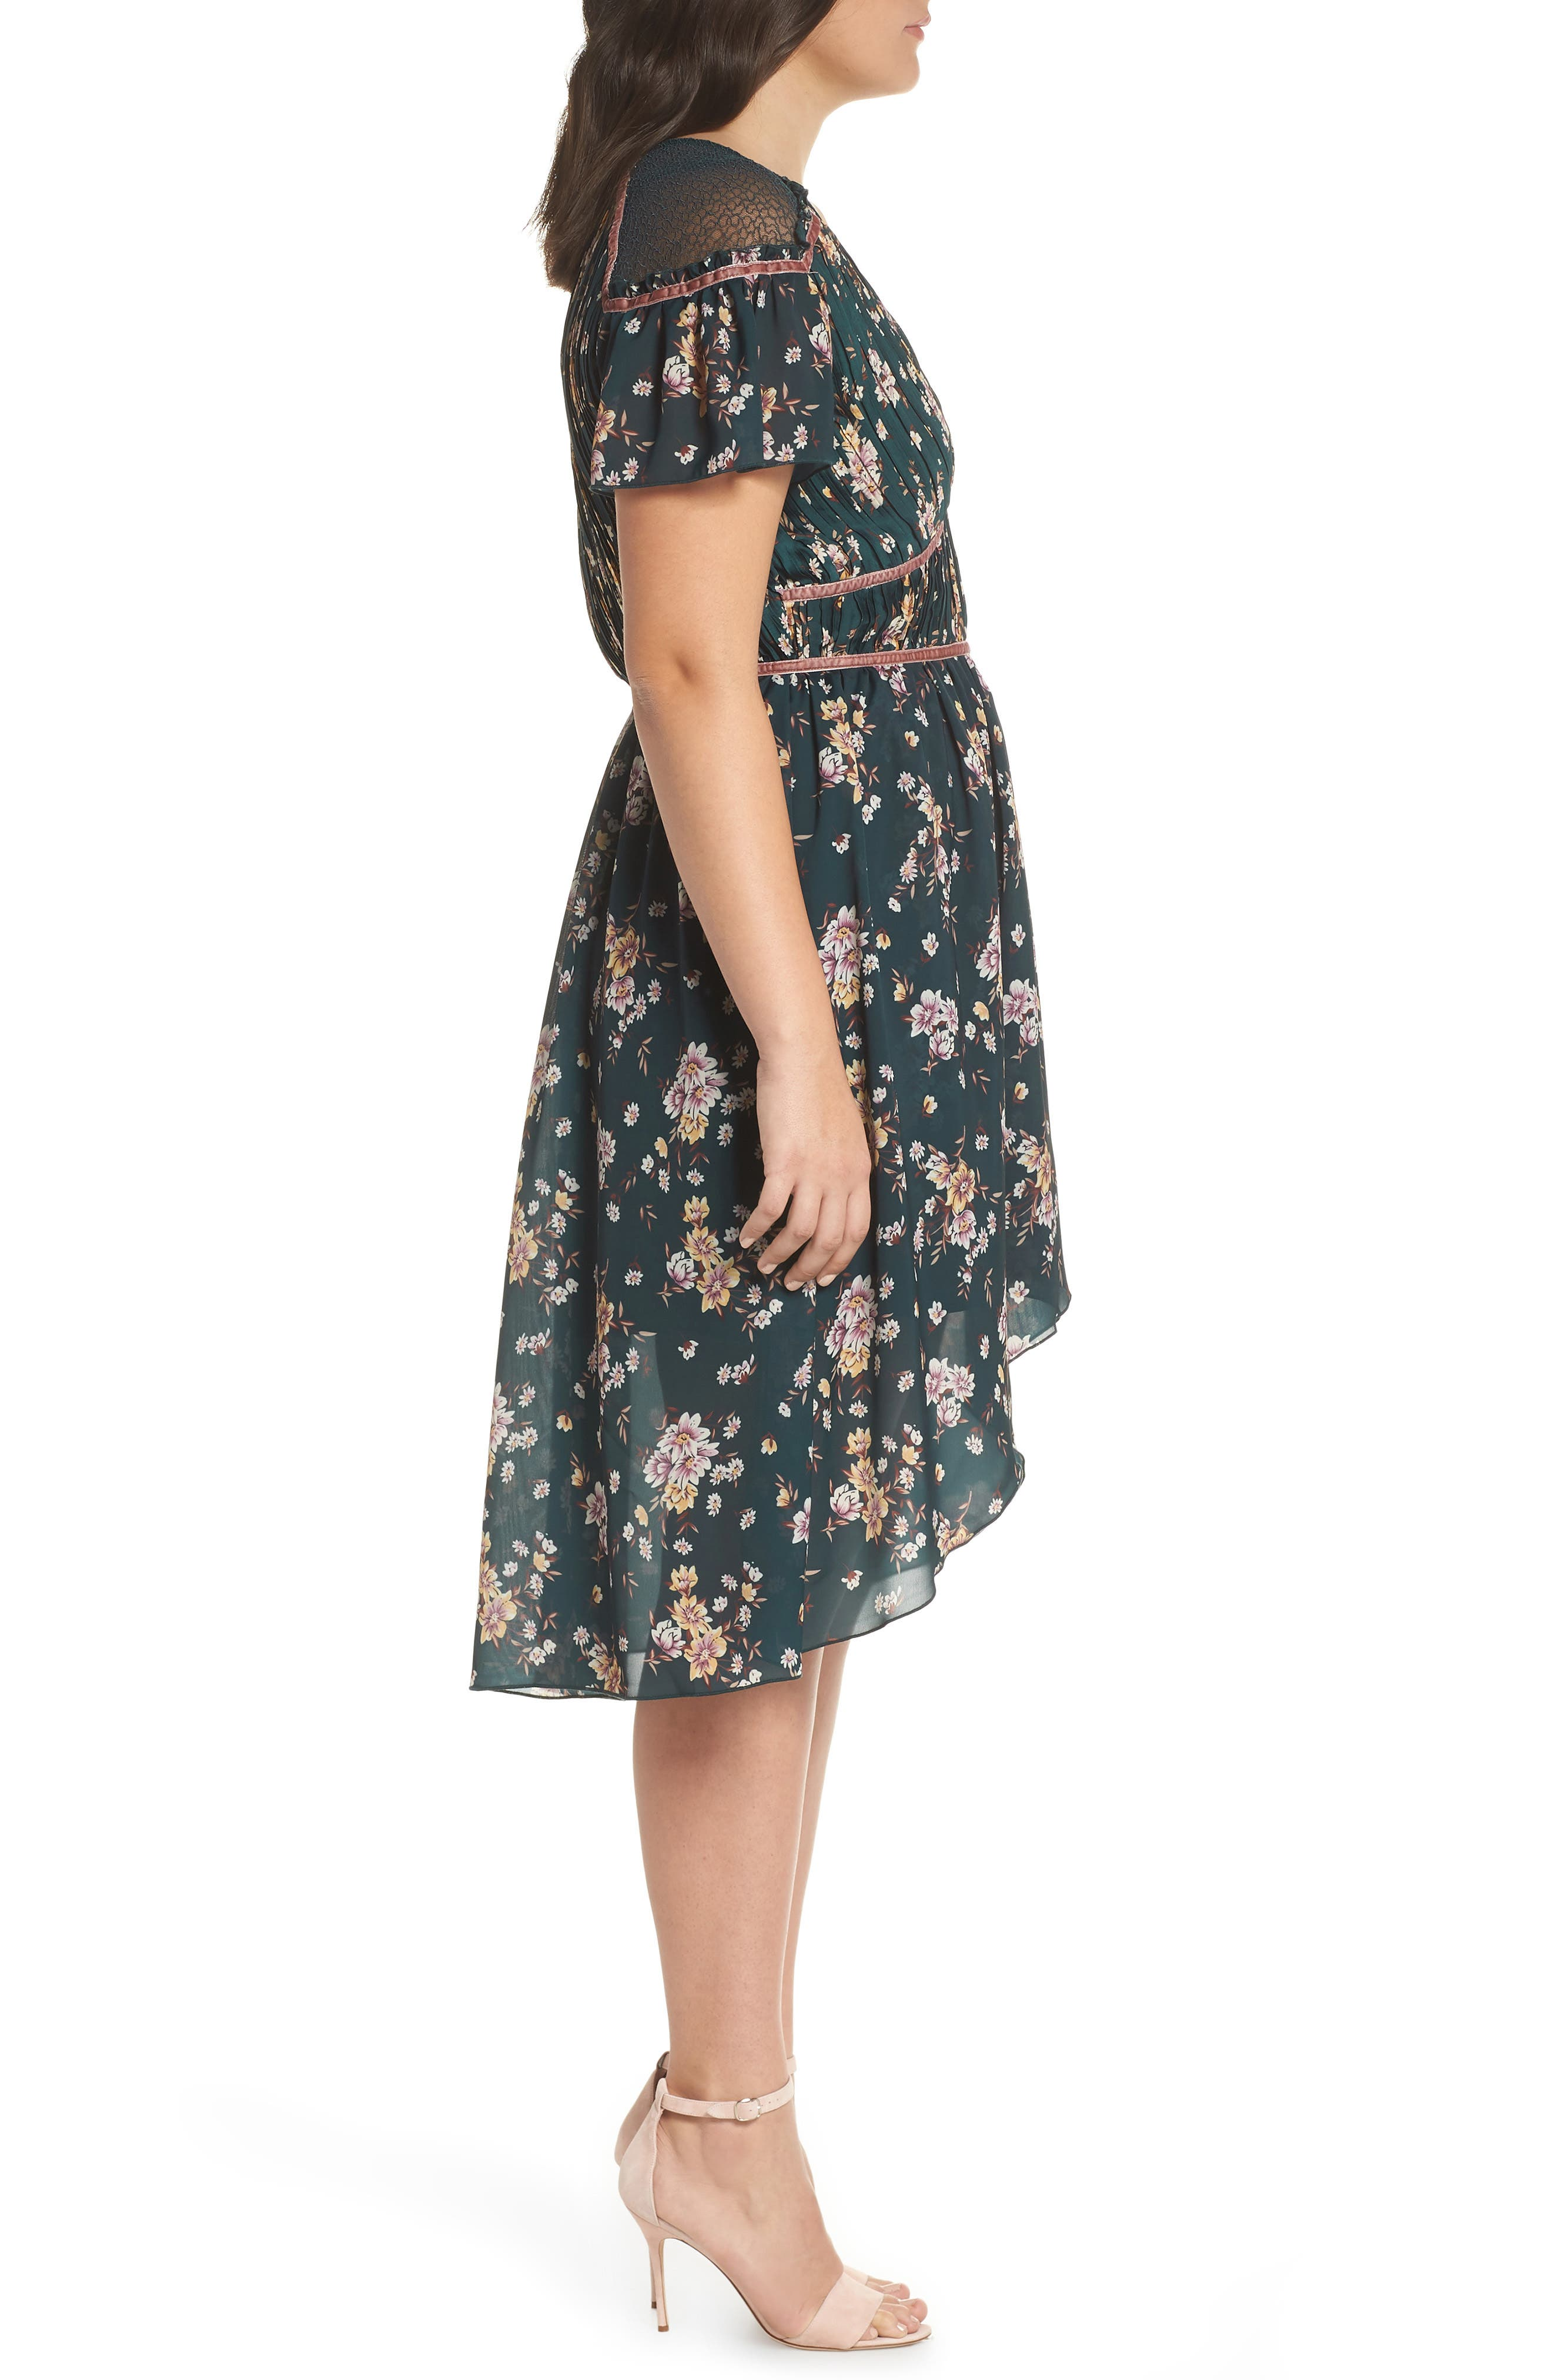 Floral Pleat & Lace Mix Dress,                             Alternate thumbnail 10, color,                             GREEN BRANCHING LILIES